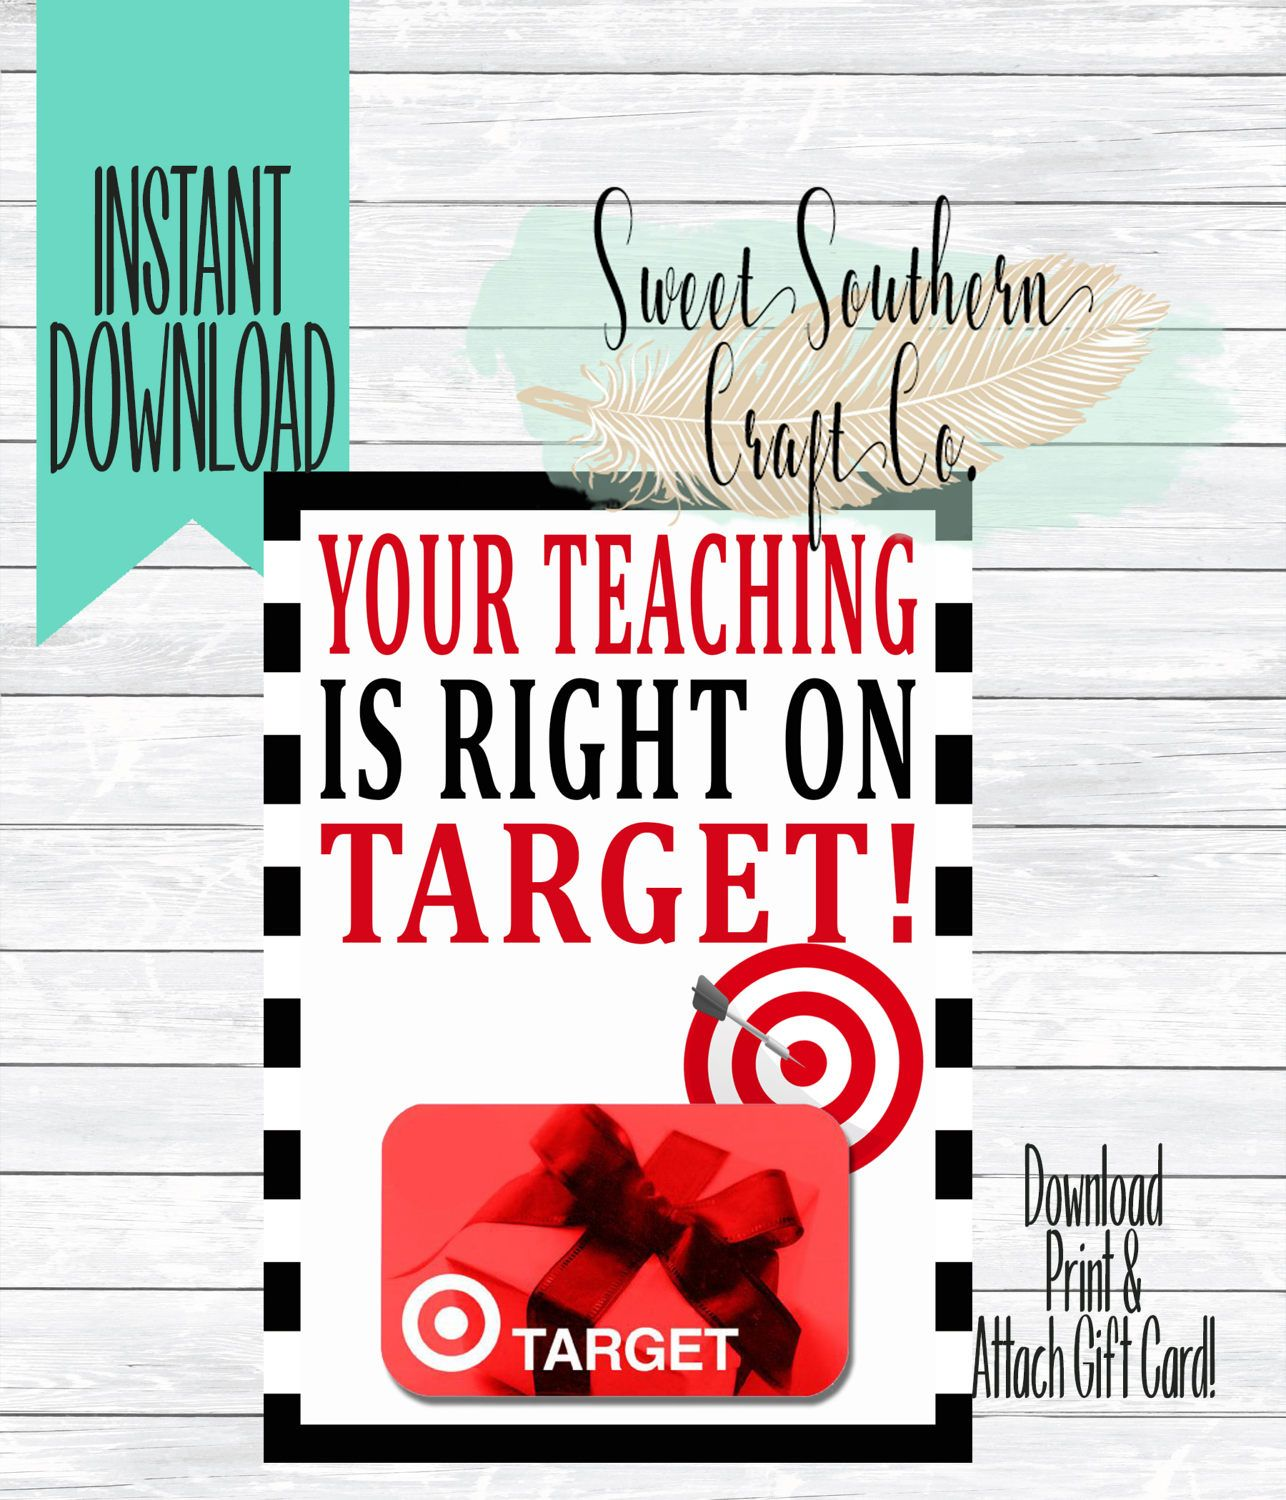 Instant downloadyour teaching is right on target